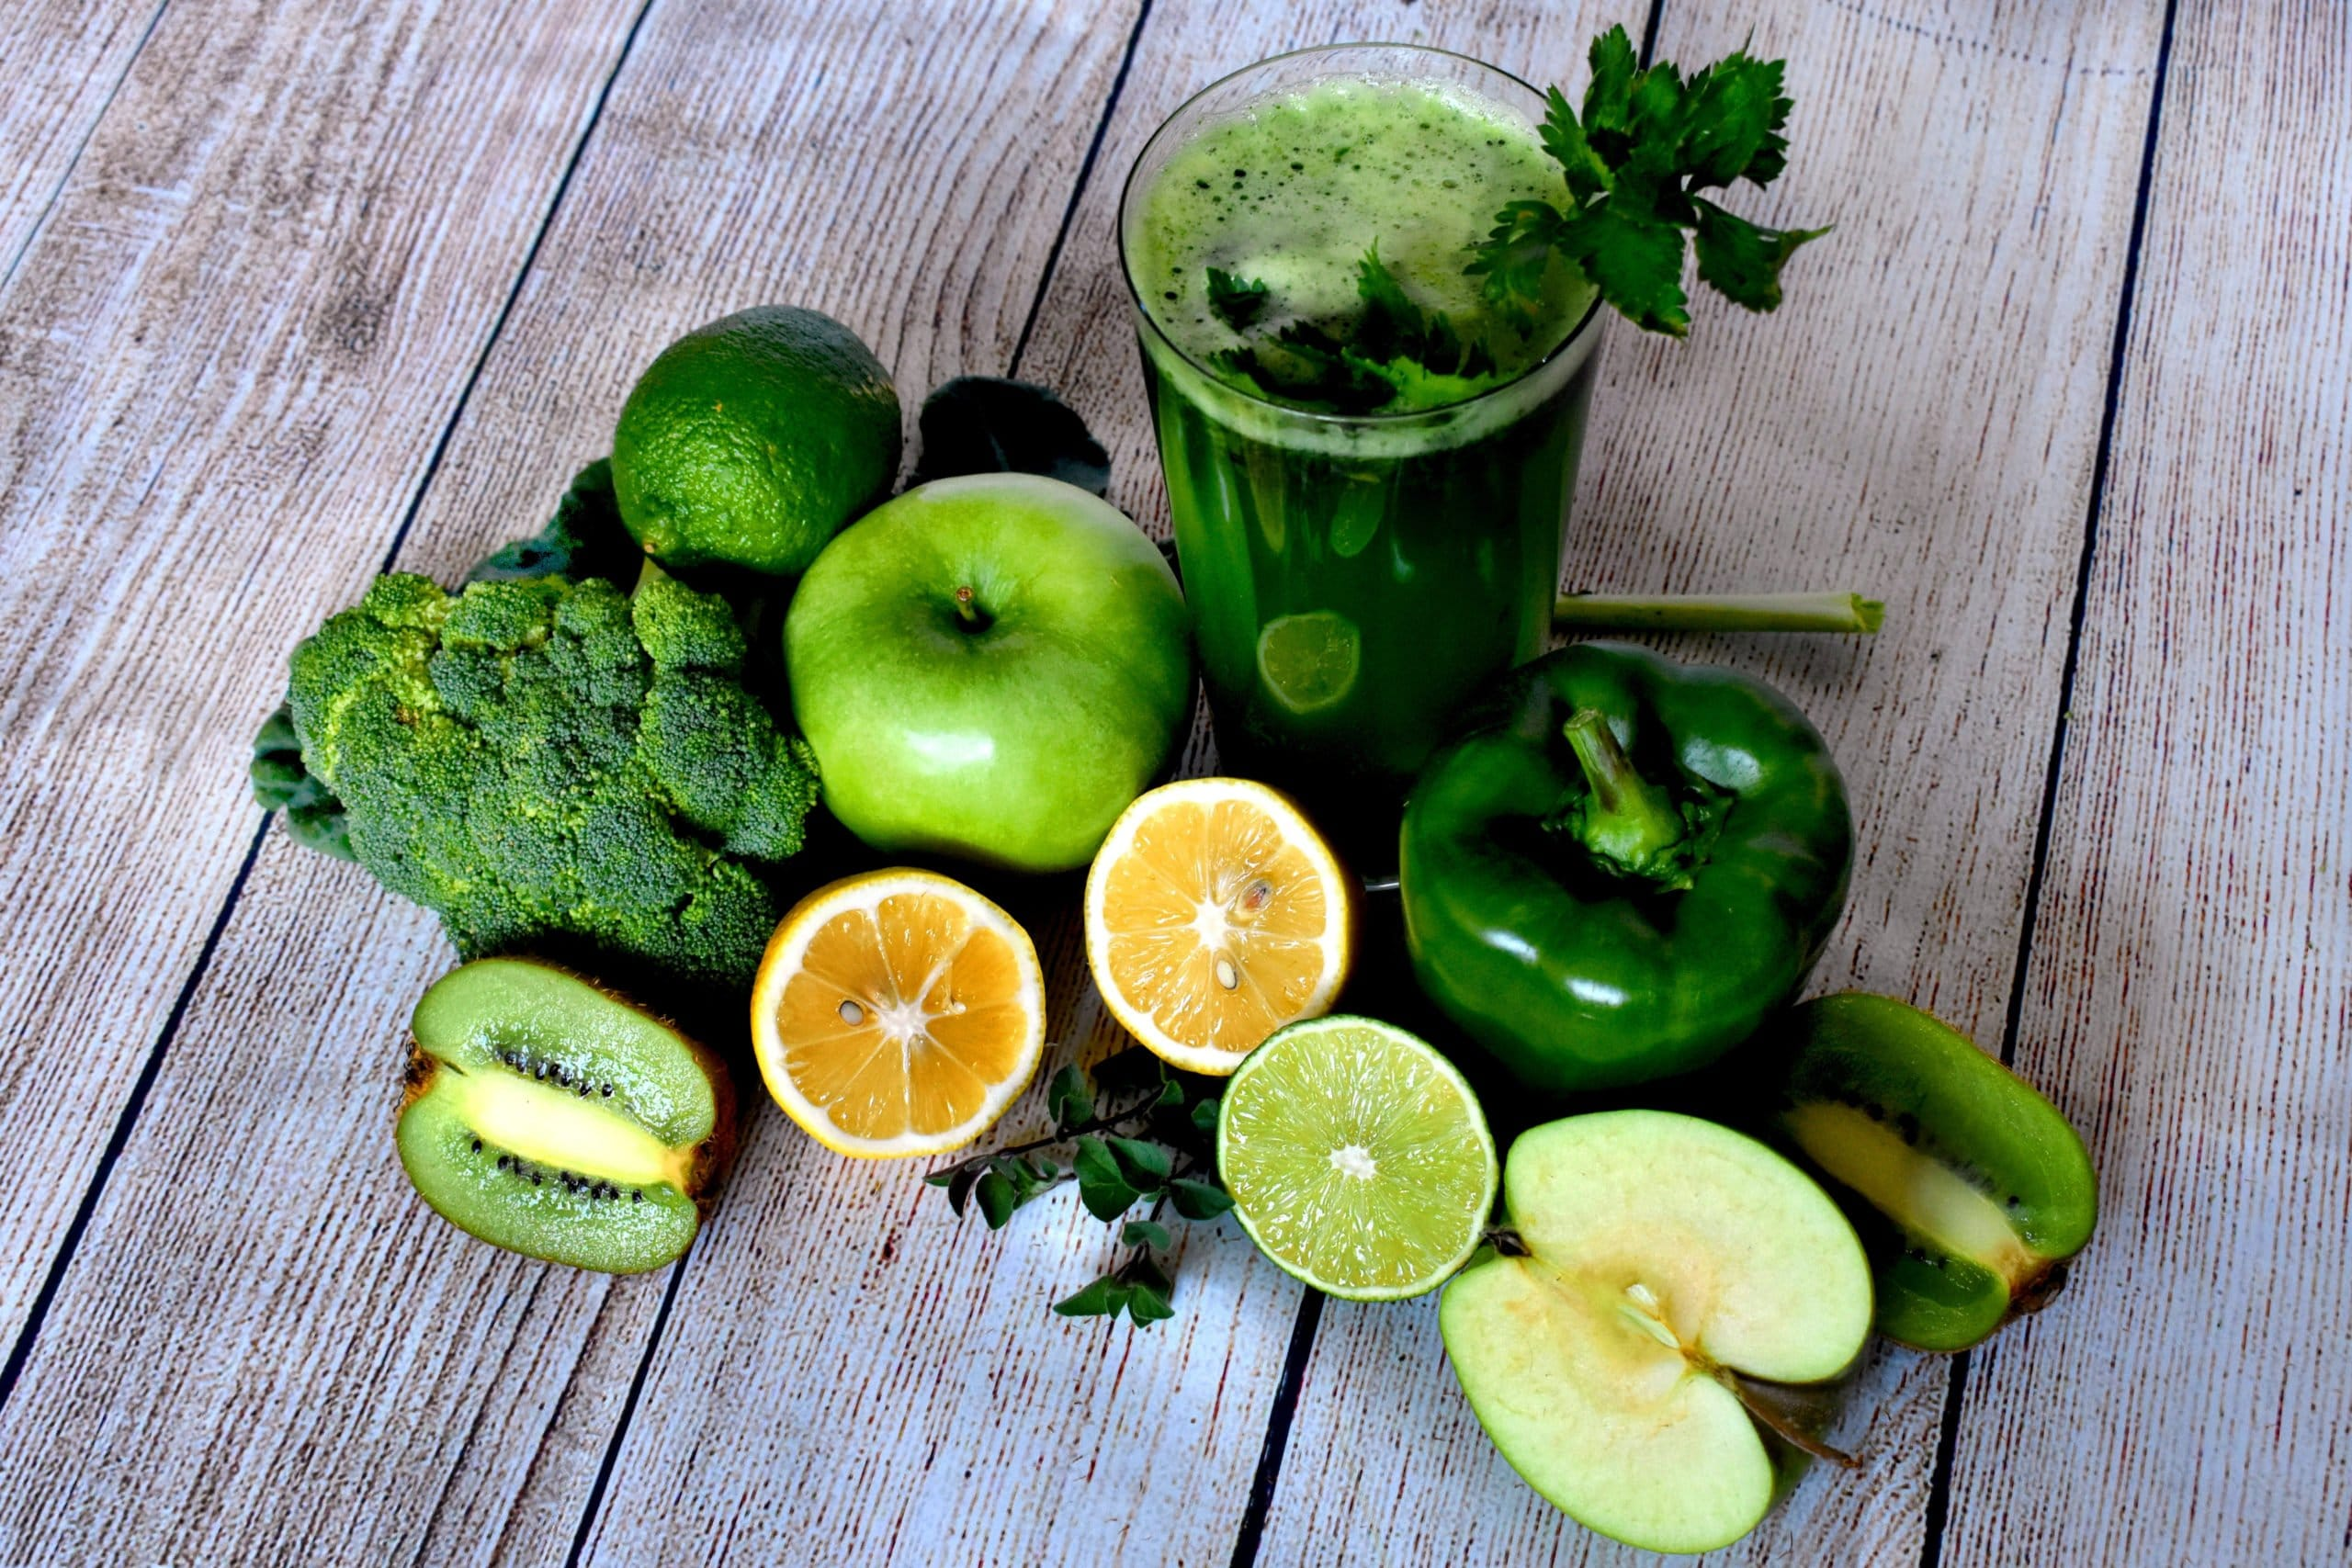 Canva Green Vegetables and Fruits for a Smoothie scaled